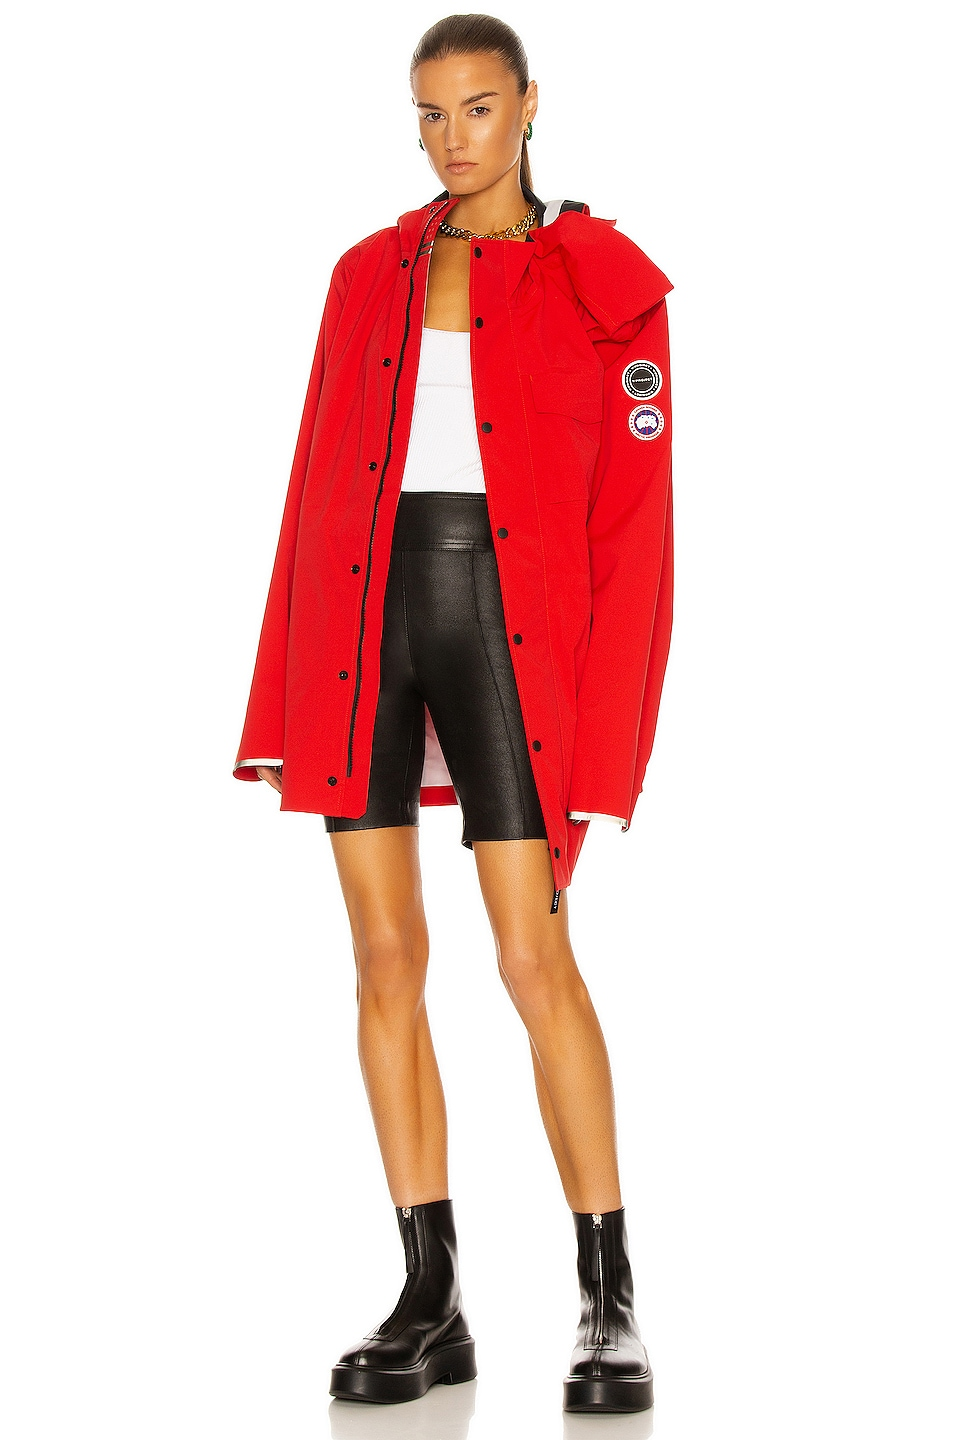 Image 1 of Y/Project x Canada Goose Nanaimo Rain Jacket in Red & Black